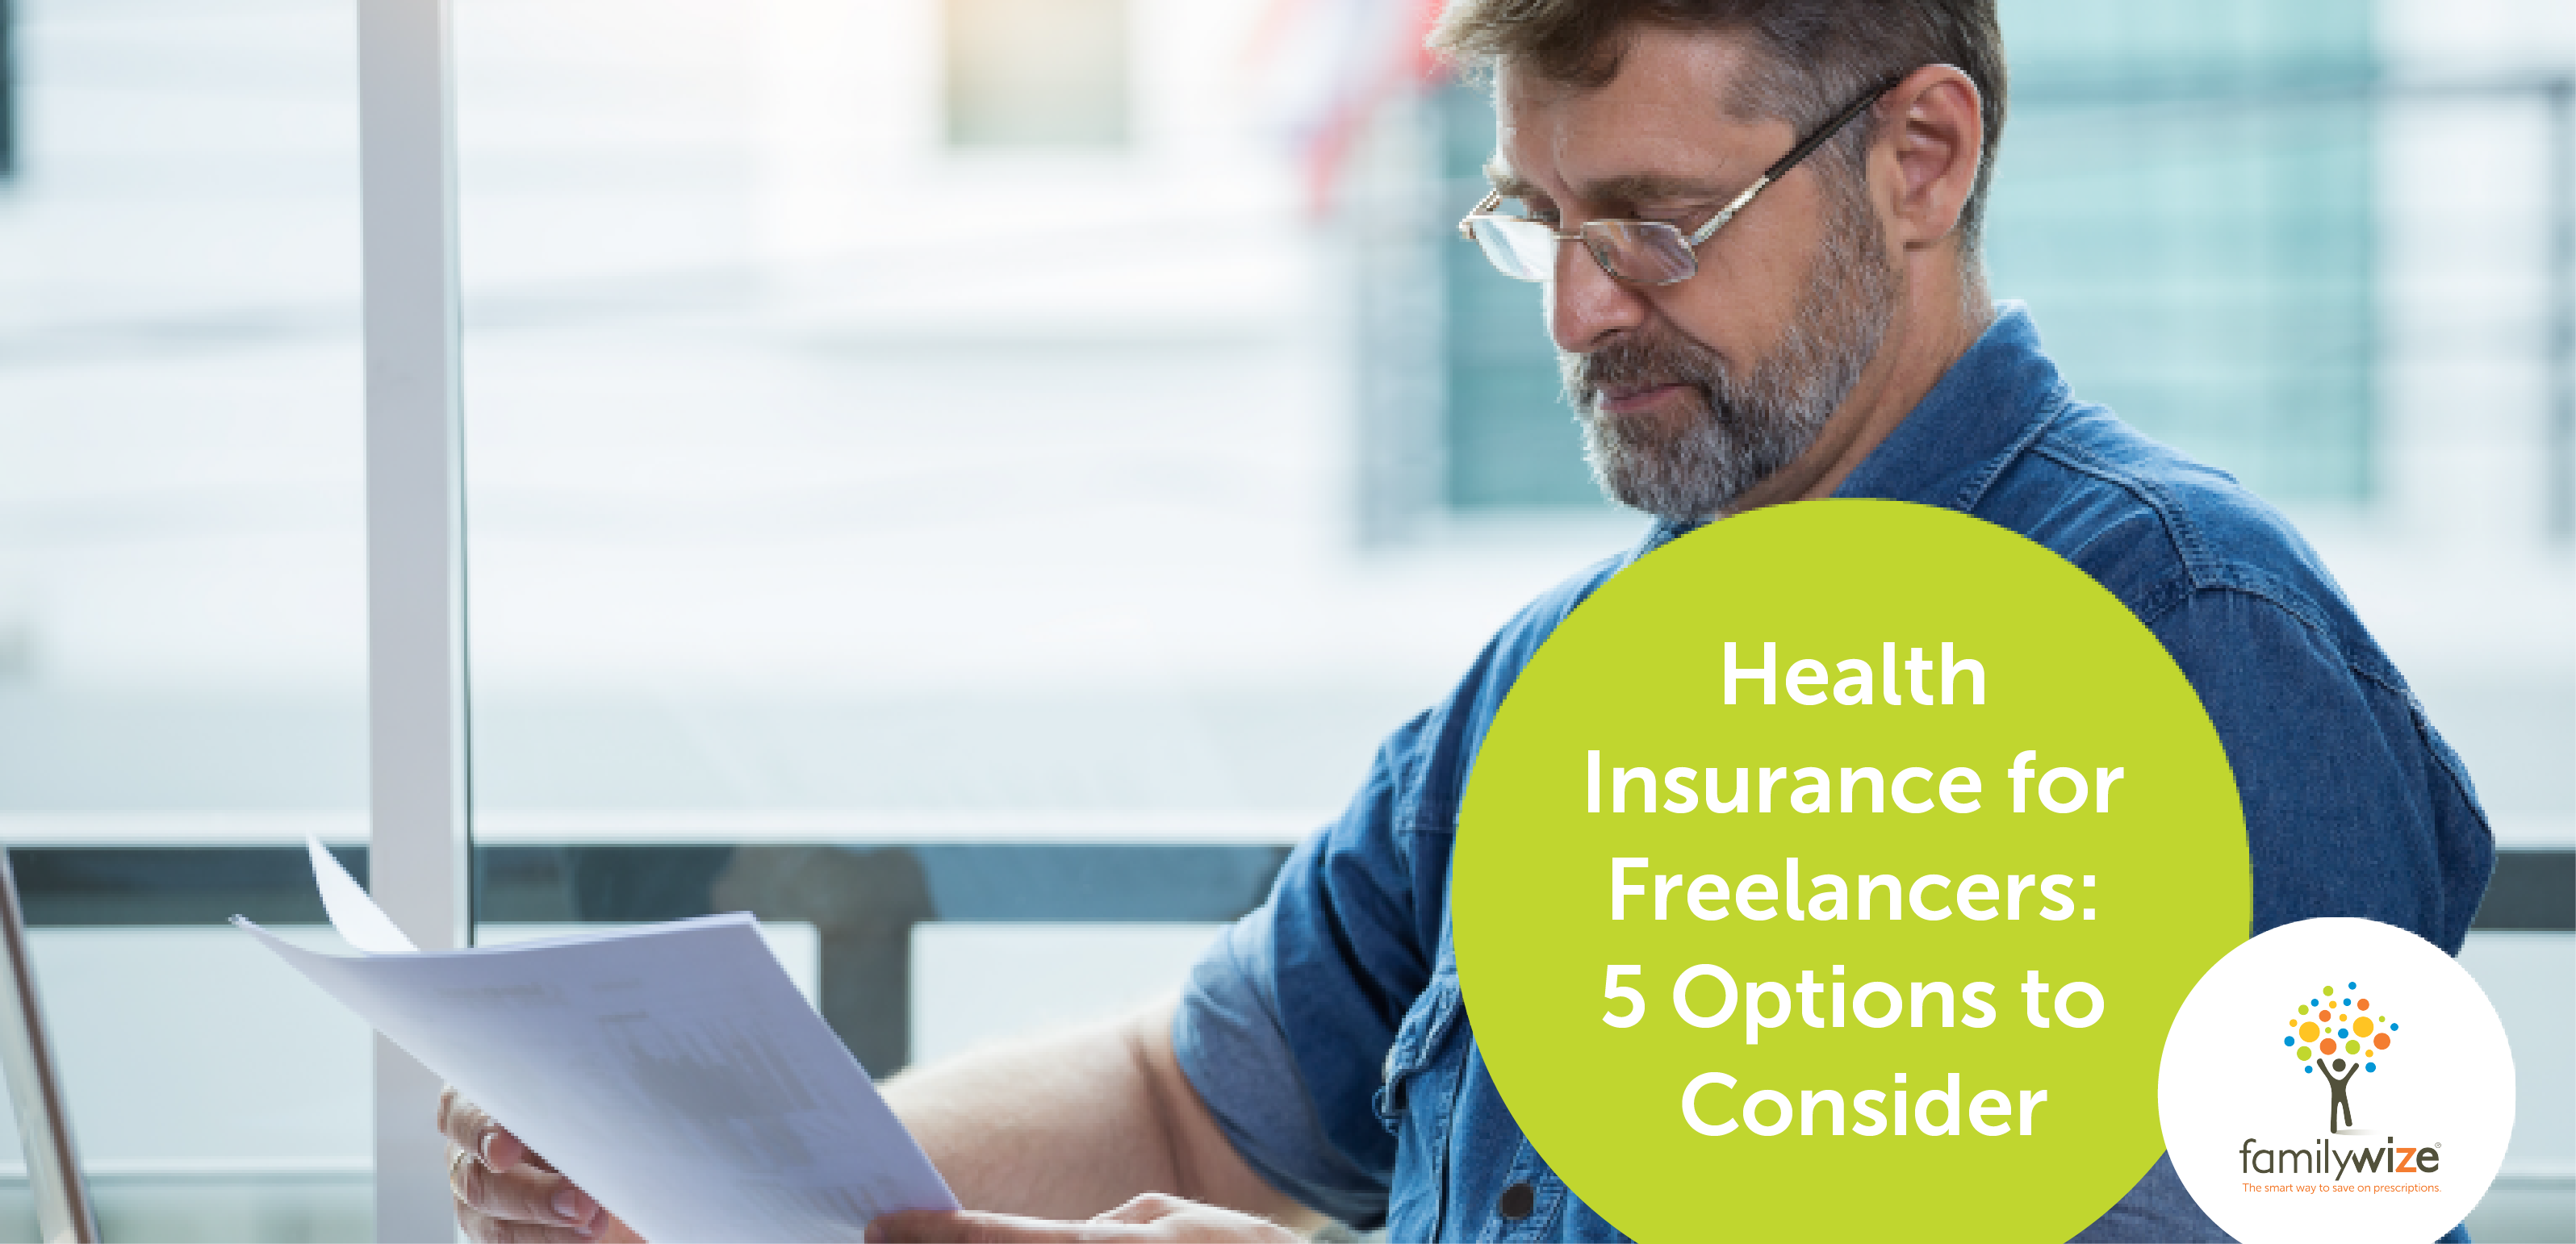 Health Insurance for Freelancers 5 Options to Consider